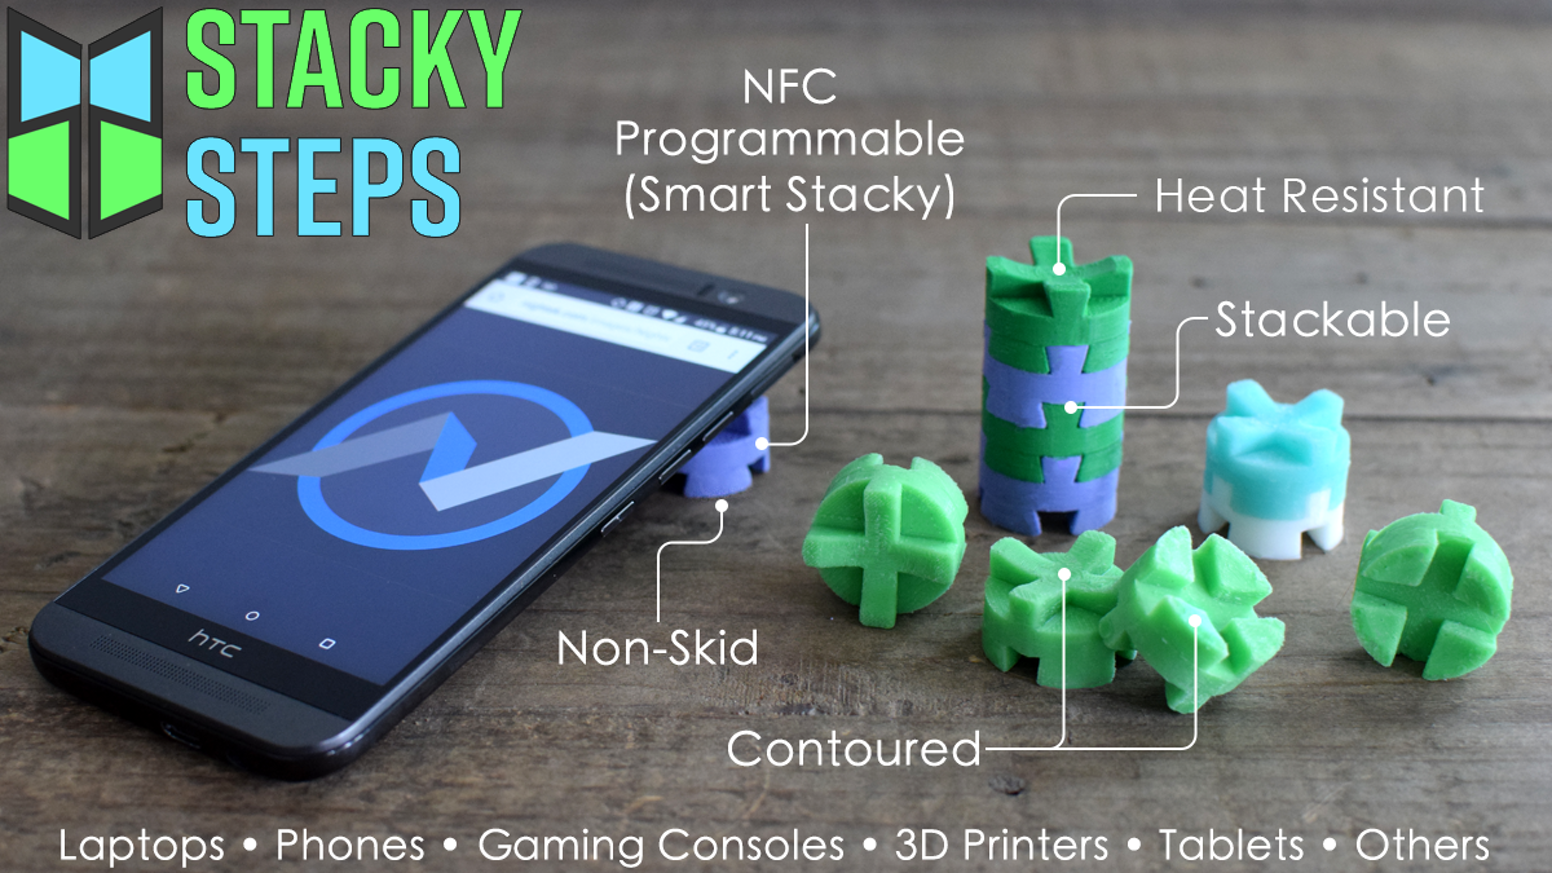 Stacky Steps are engineered to improve airflow under your devices thereby reducing heat, improving performance and ergonomics.